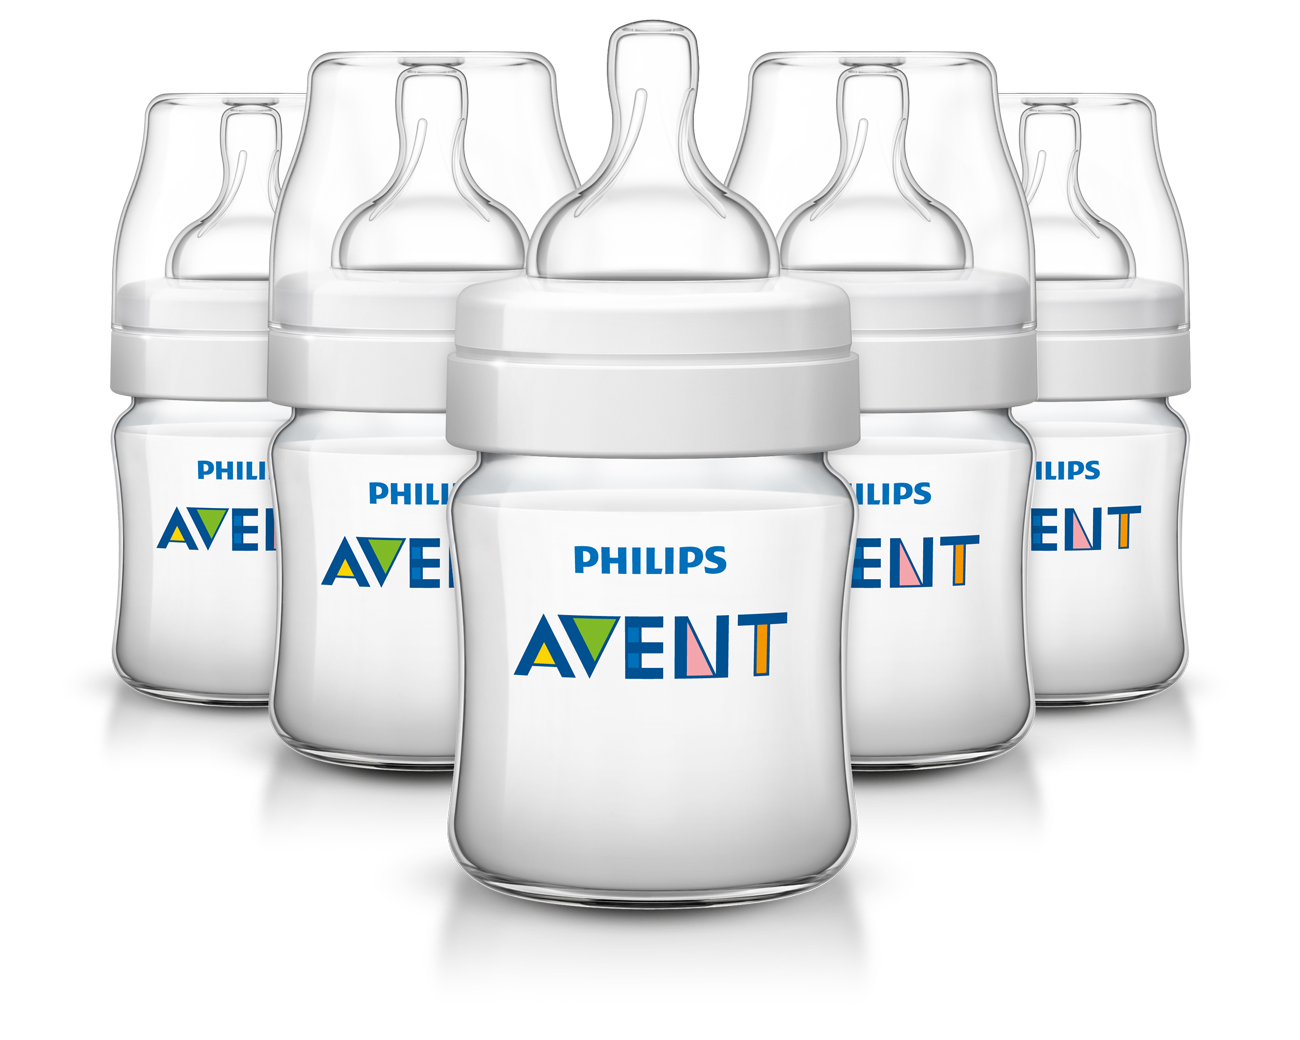 Philips Avent Anti-colic Baby Bottle 4oz, Clear, 5pk by Philips AVENT